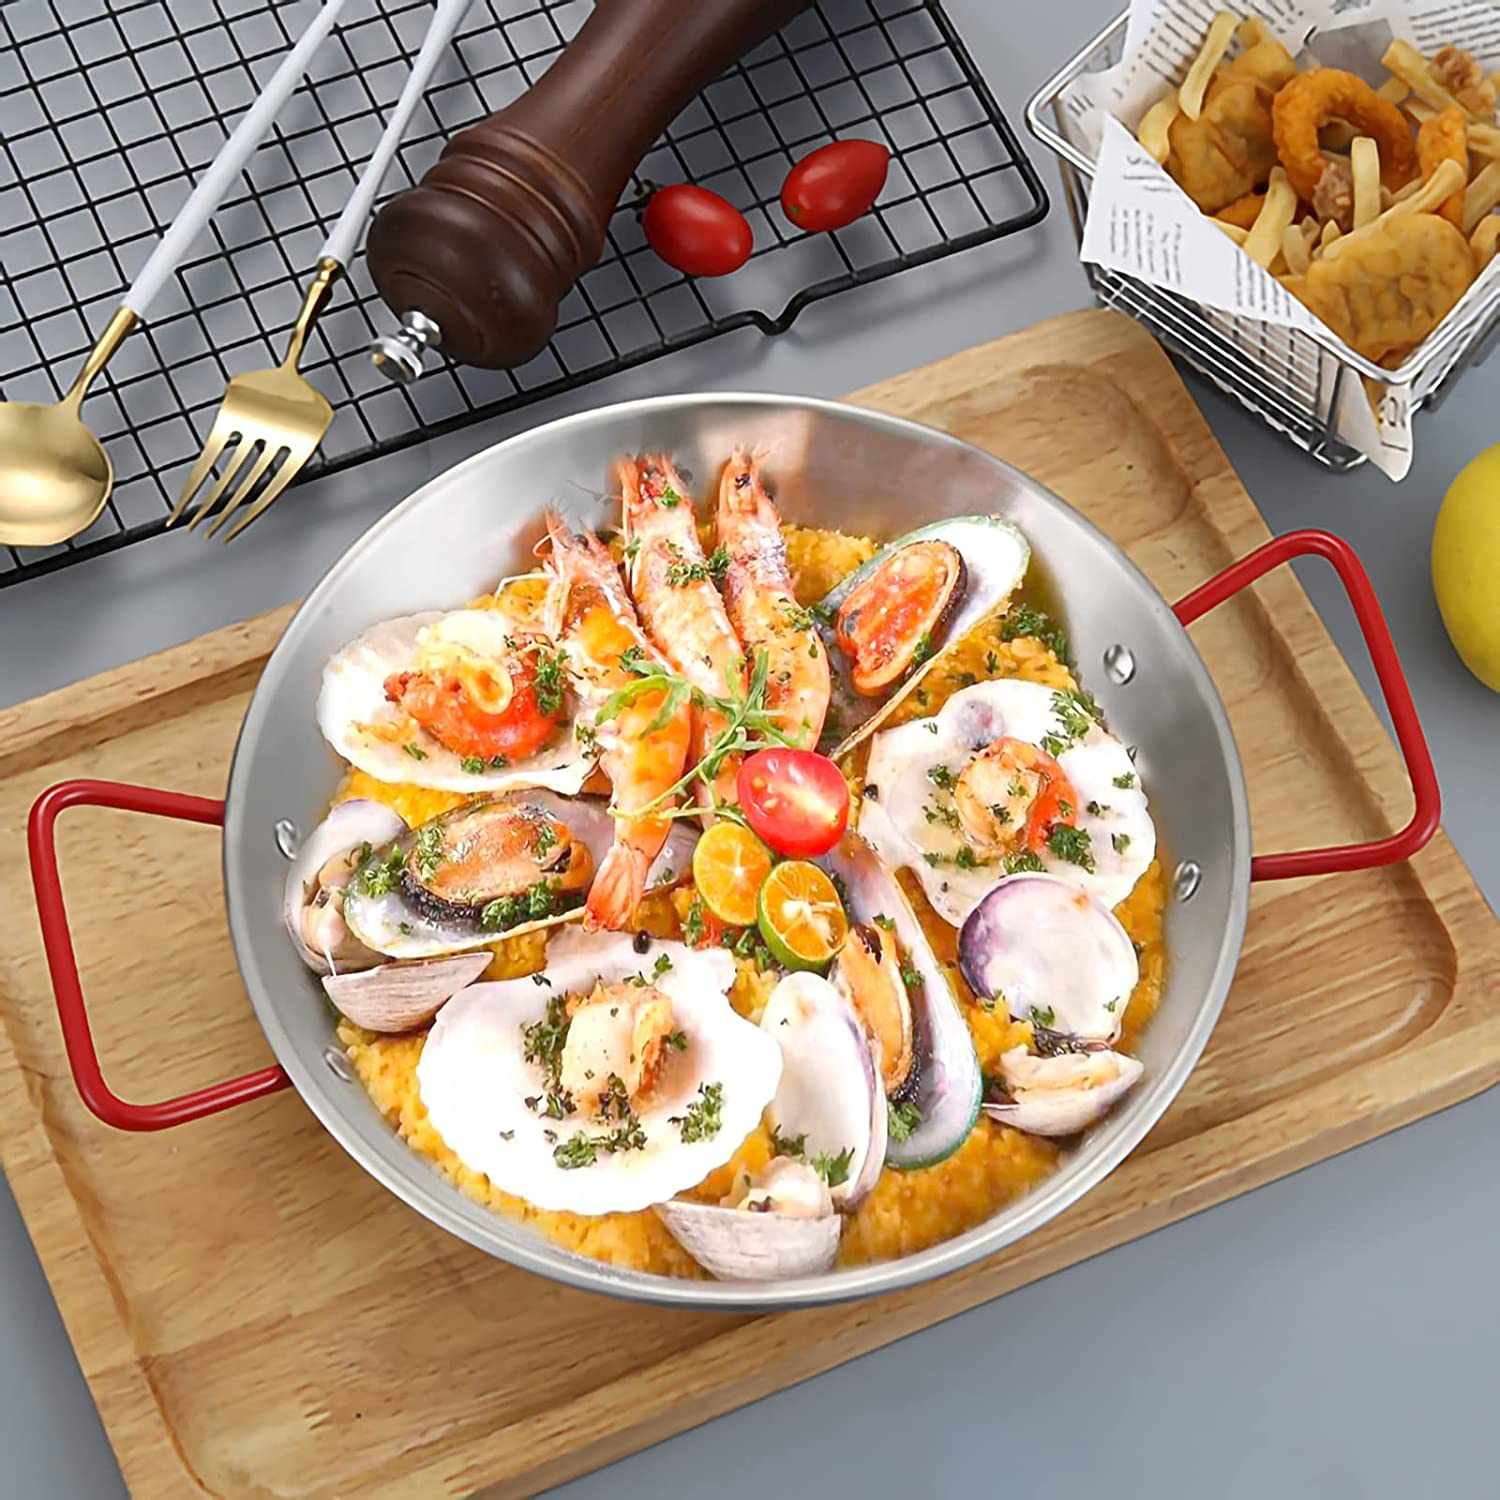 MANO Max 74% OFF Paella 5 ☆ very popular Pan 15 Inch Nonstick 6 for S Skillet Stainless Steel